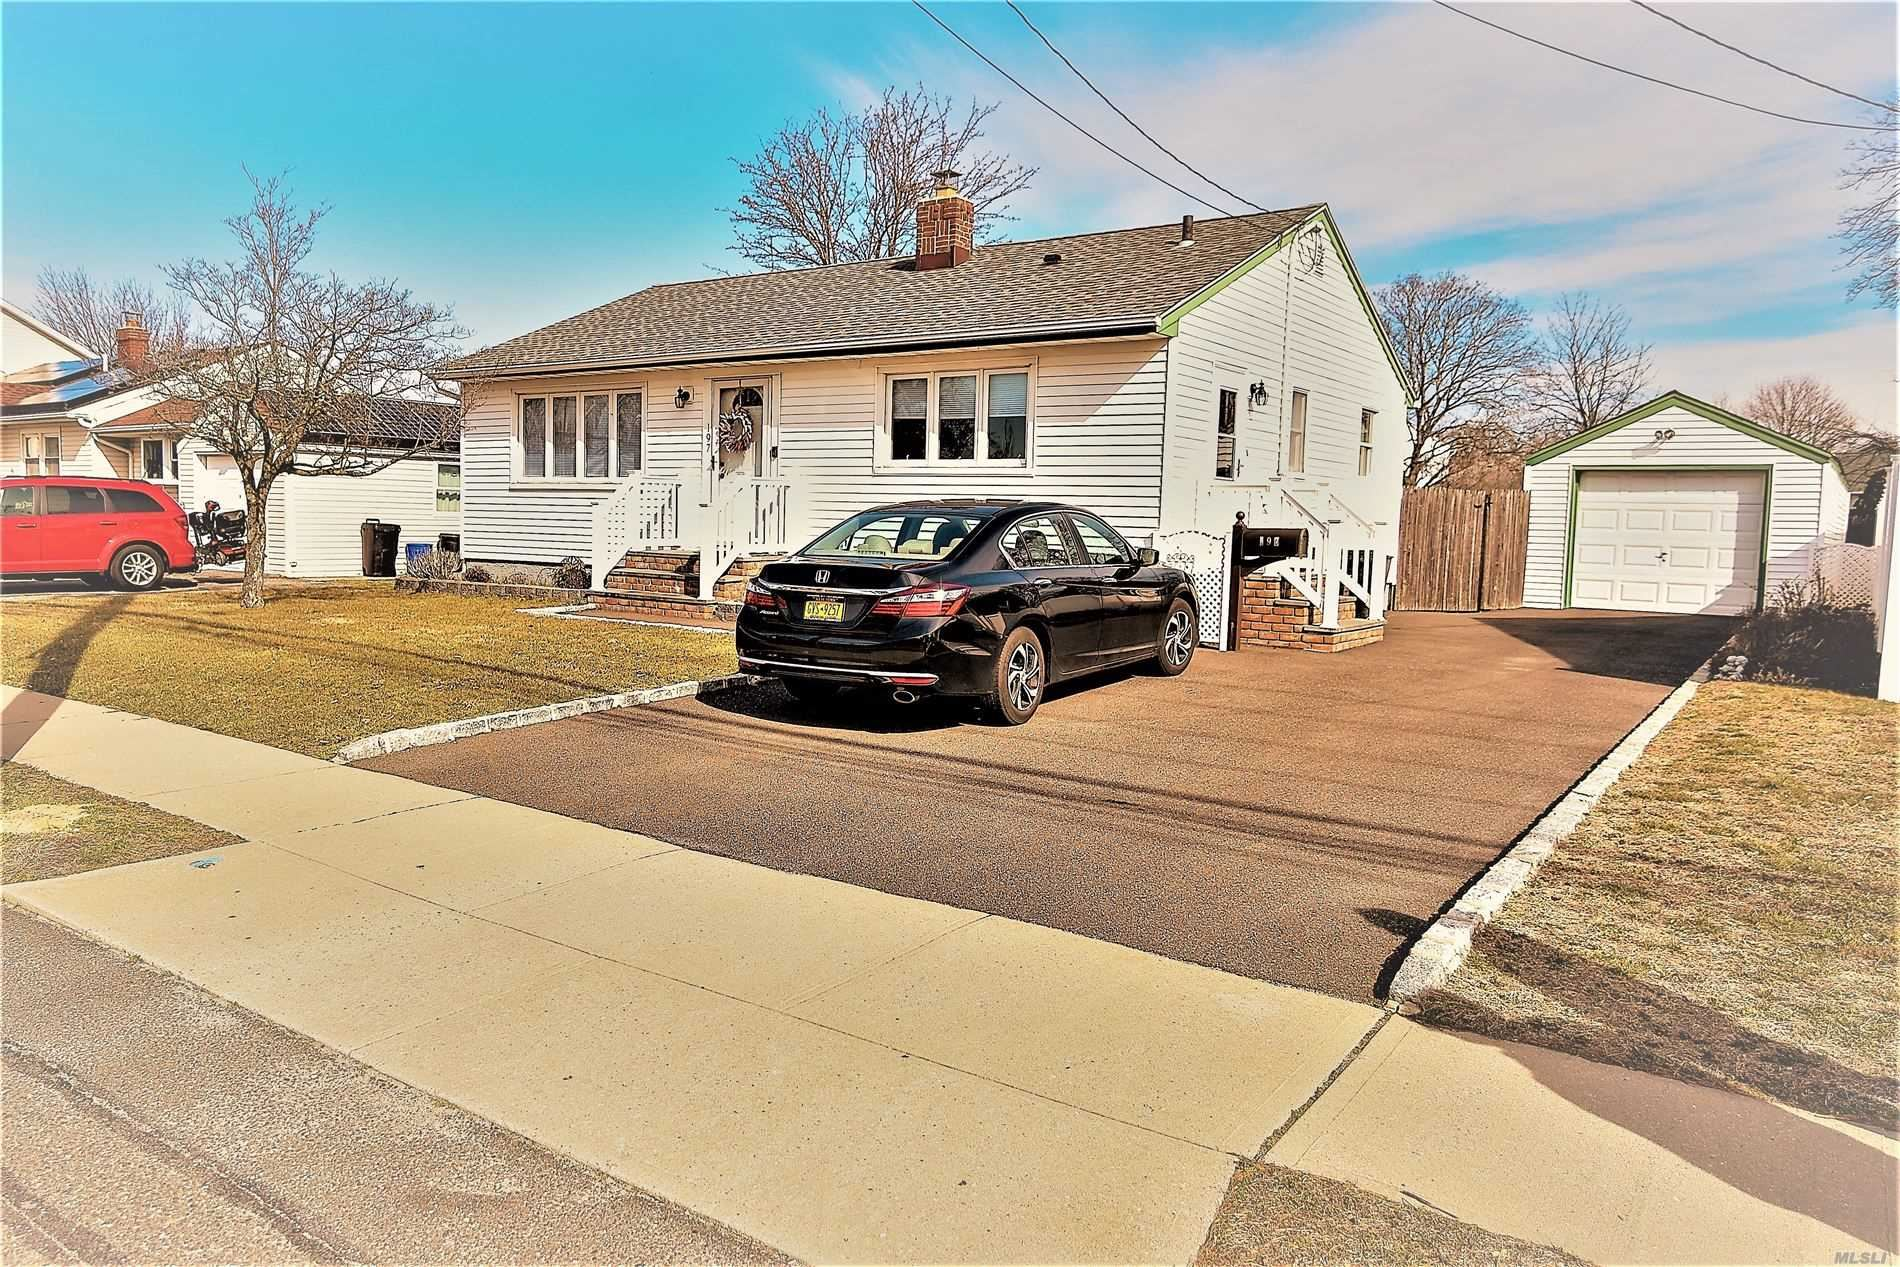 197 Arnold Avenue, West Babylon, NY 11704 - MLS#: 3206378